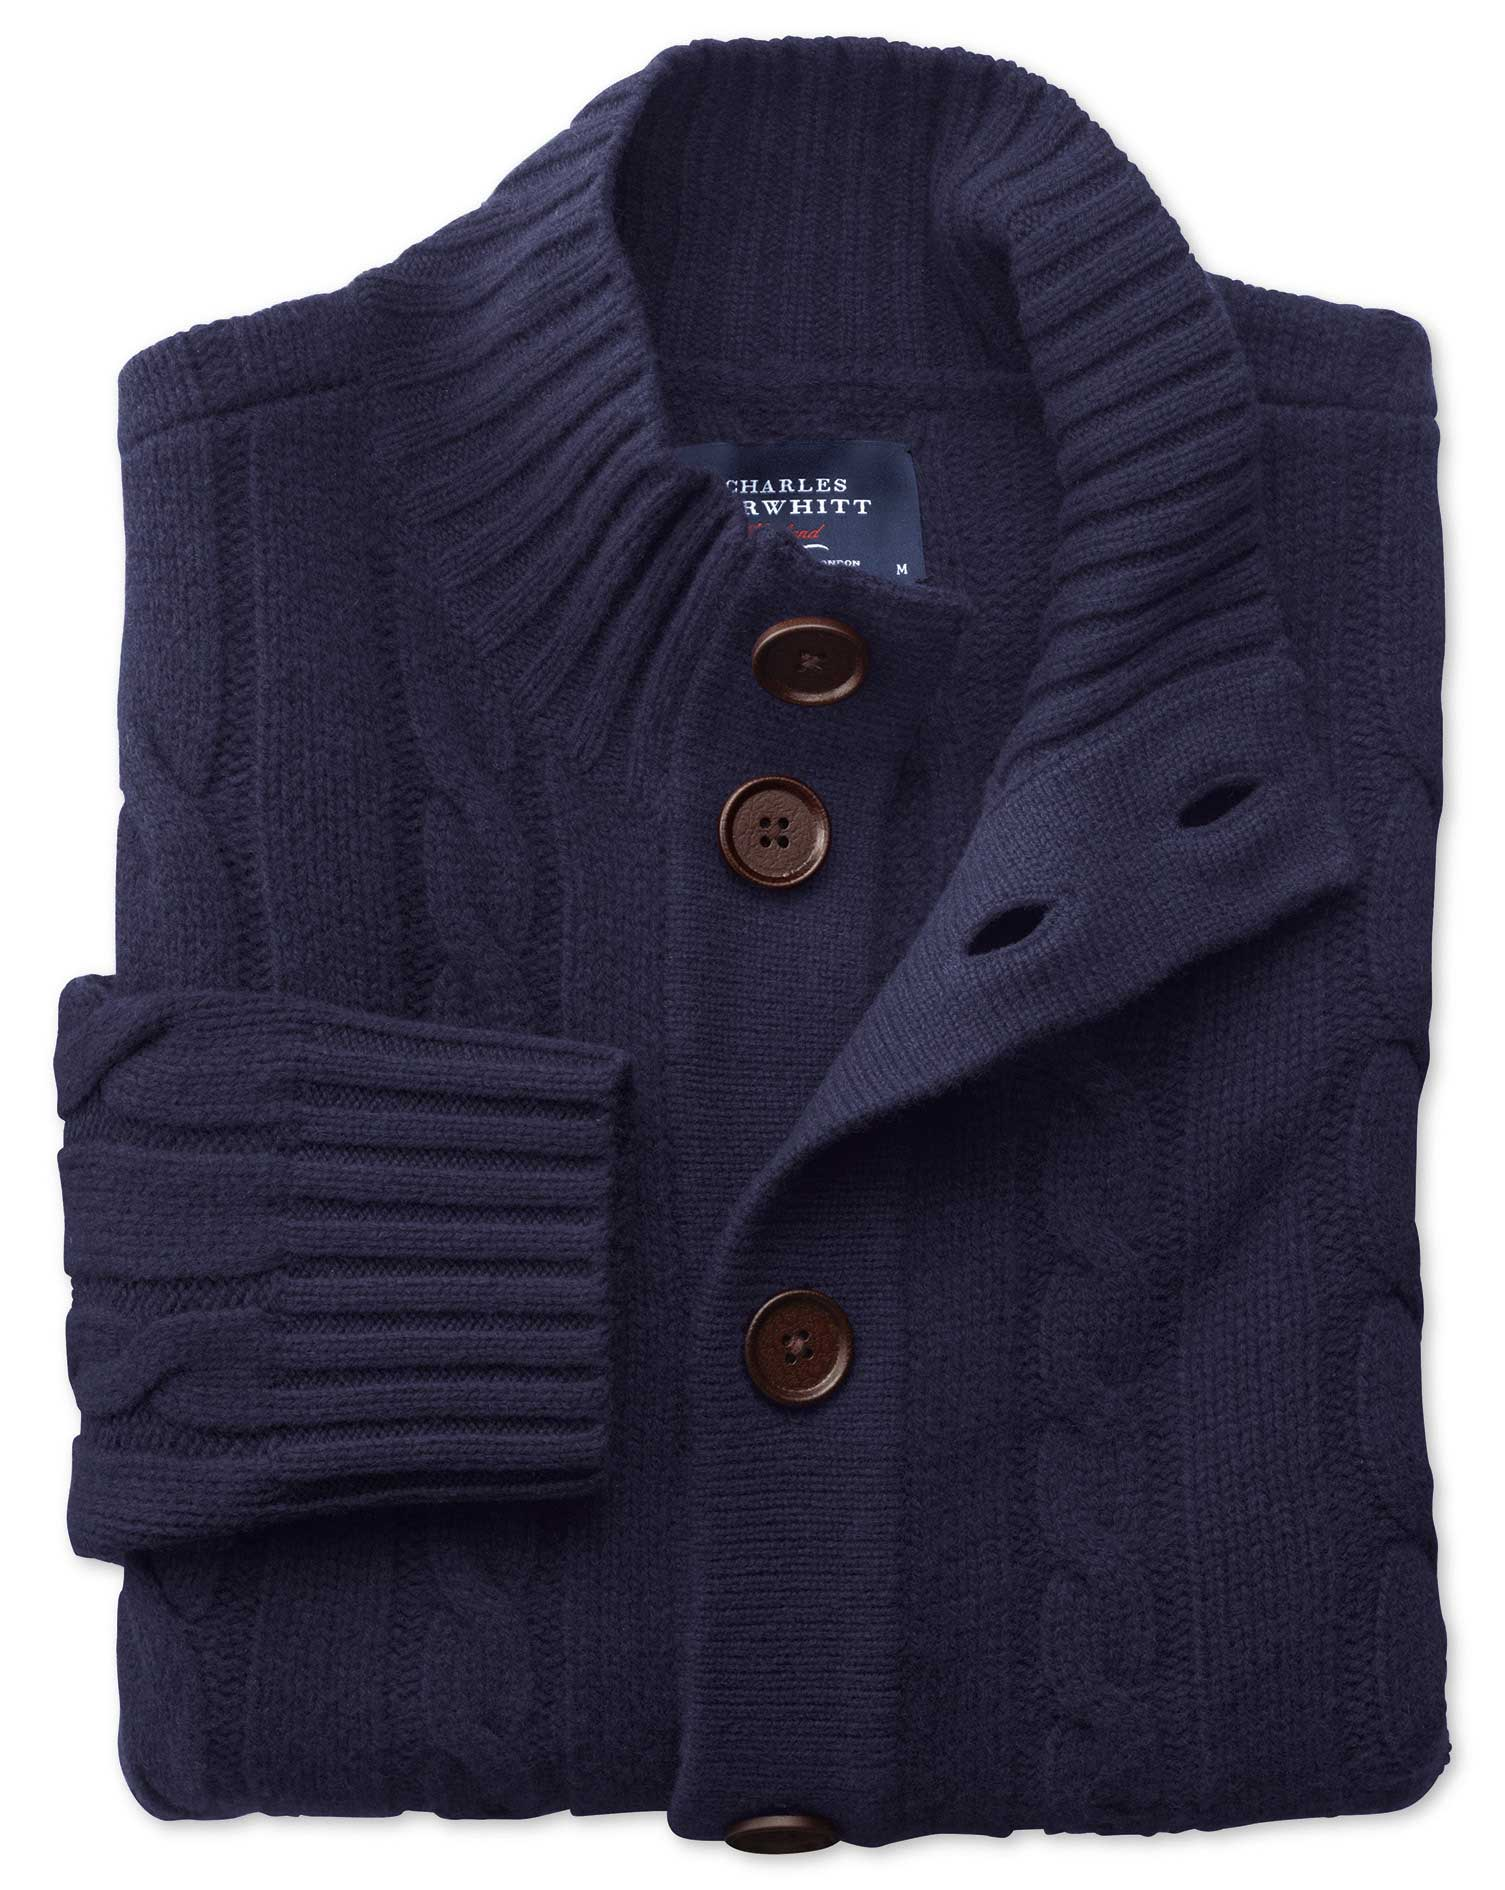 Navy Lambswool Cable Cardigan Size XL by Charles Tyrwhitt